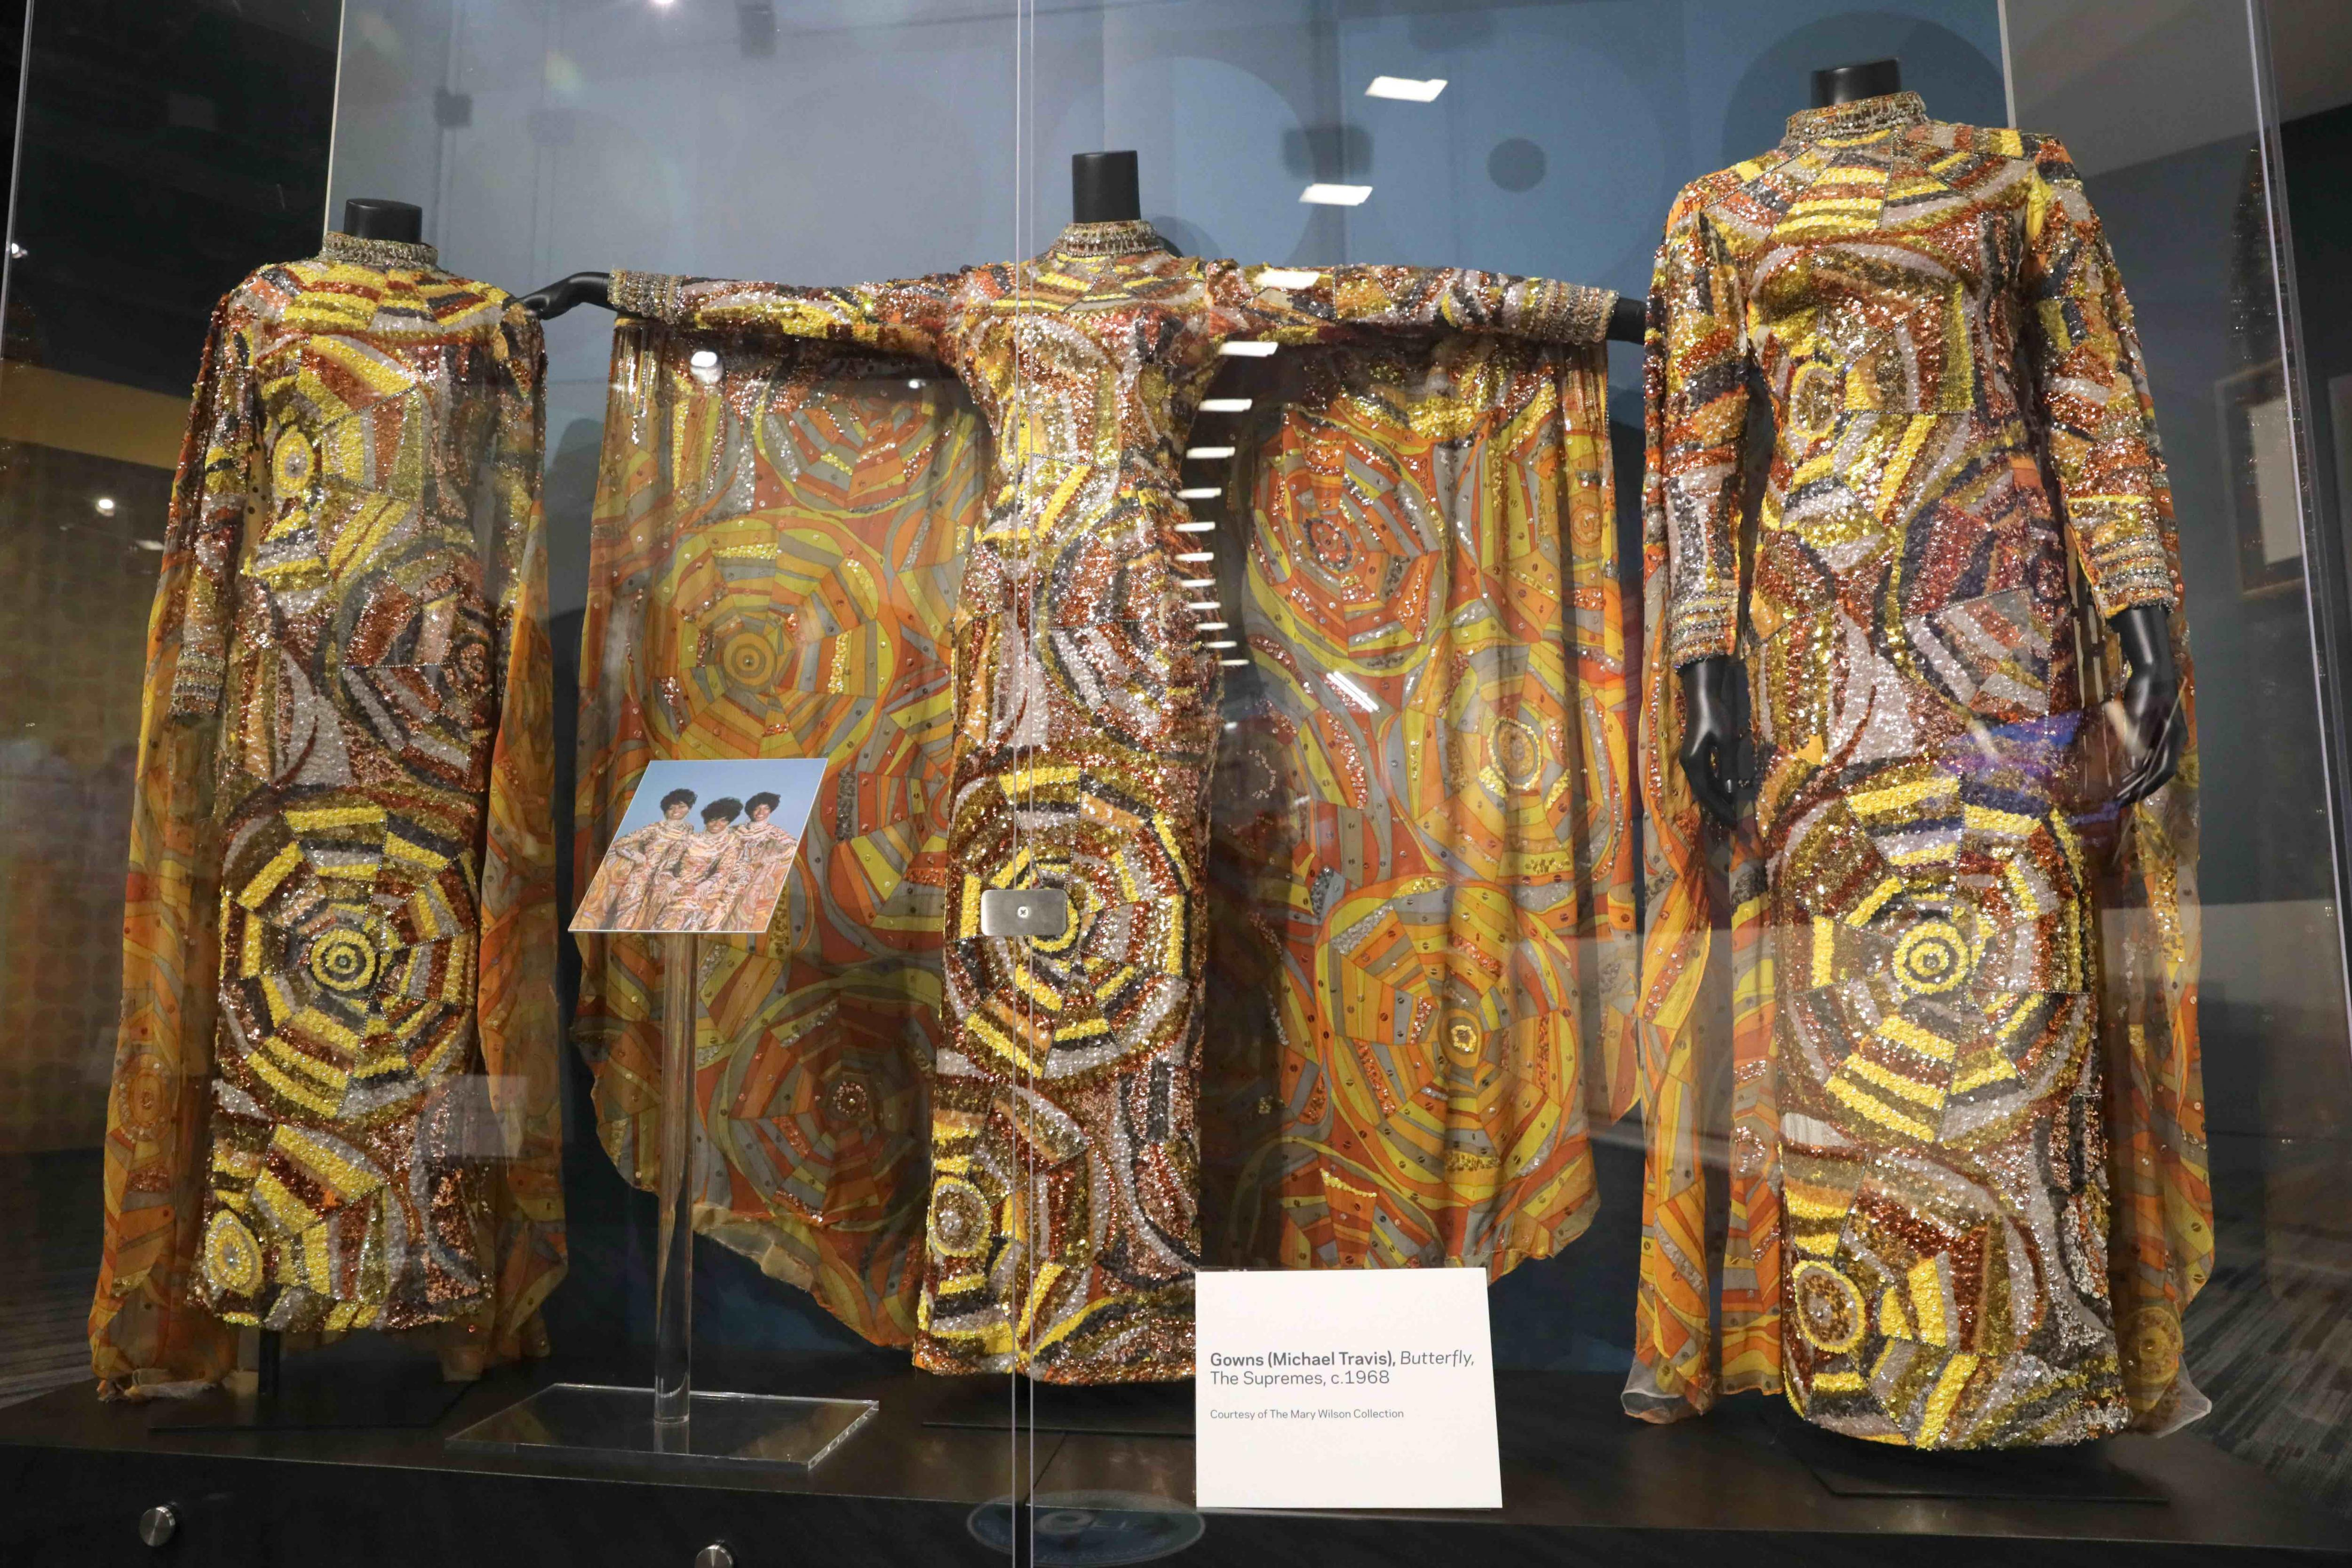 The Supremes' butterfly gowns on display at GRAMMY Museum